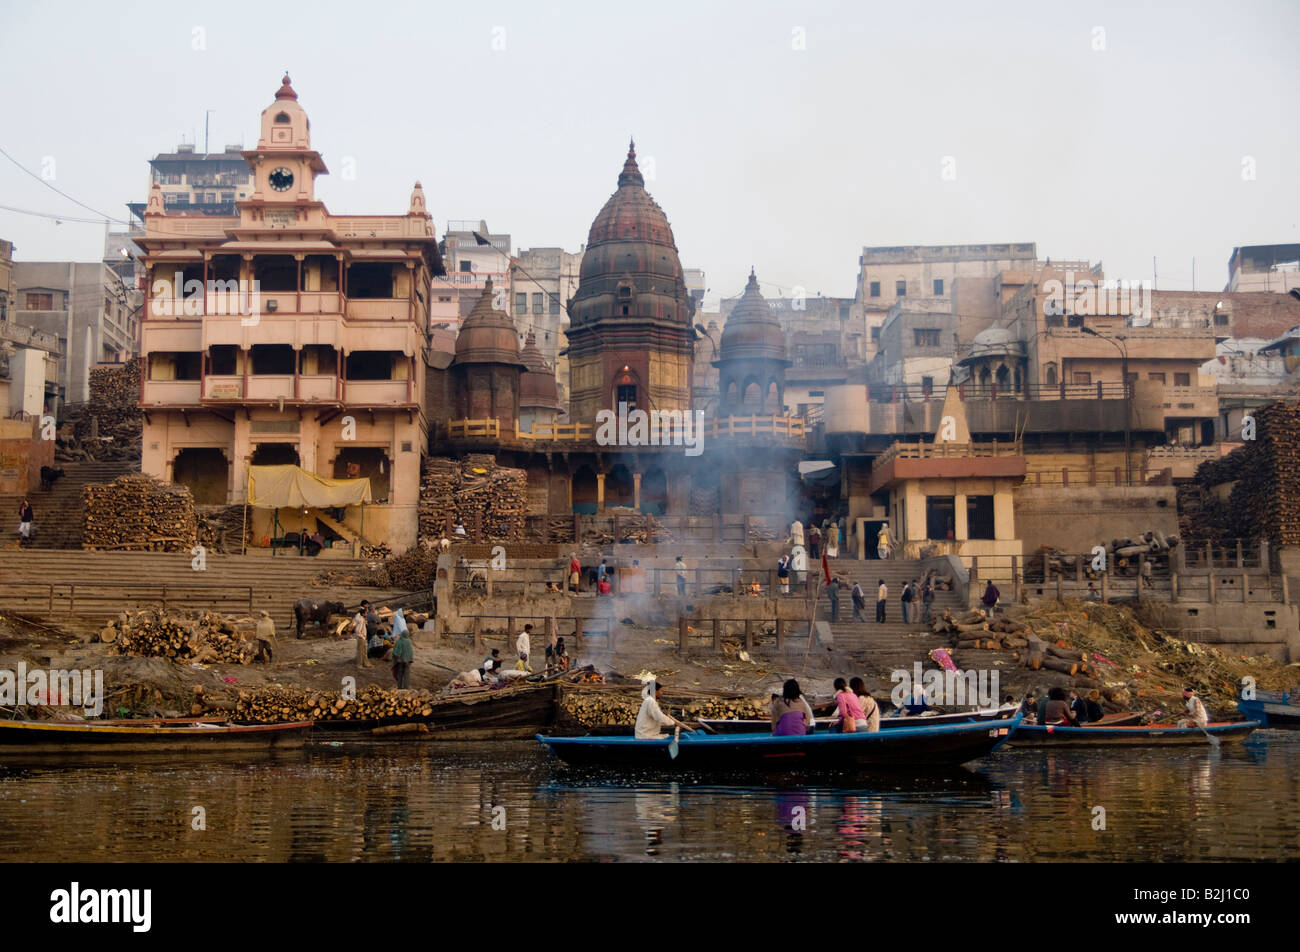 Preparations for an open air Hindu cremation in the ancient city of Varanasi on the banks of the river Ganges, India. - Stock Image